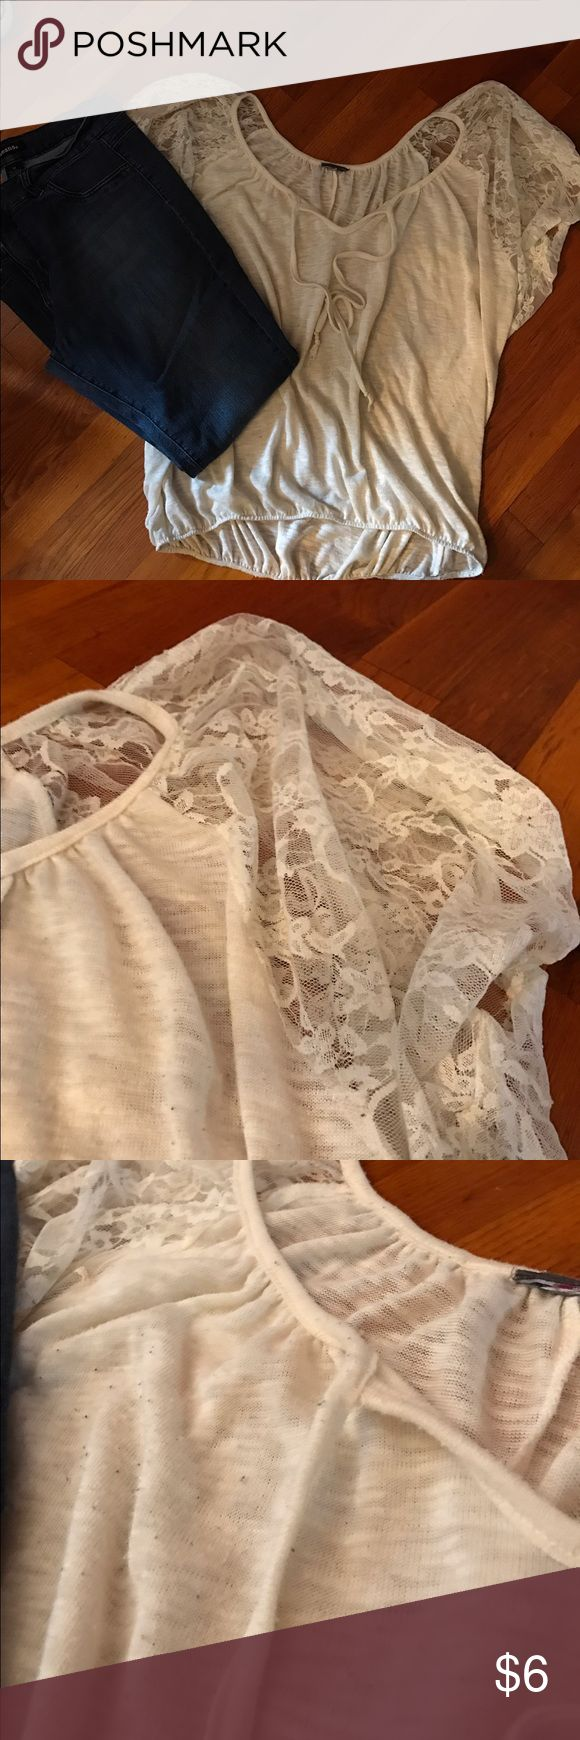 Cream tee LAce sleeves and tie in front Anthropologie Tops Tees - Short Sleeve